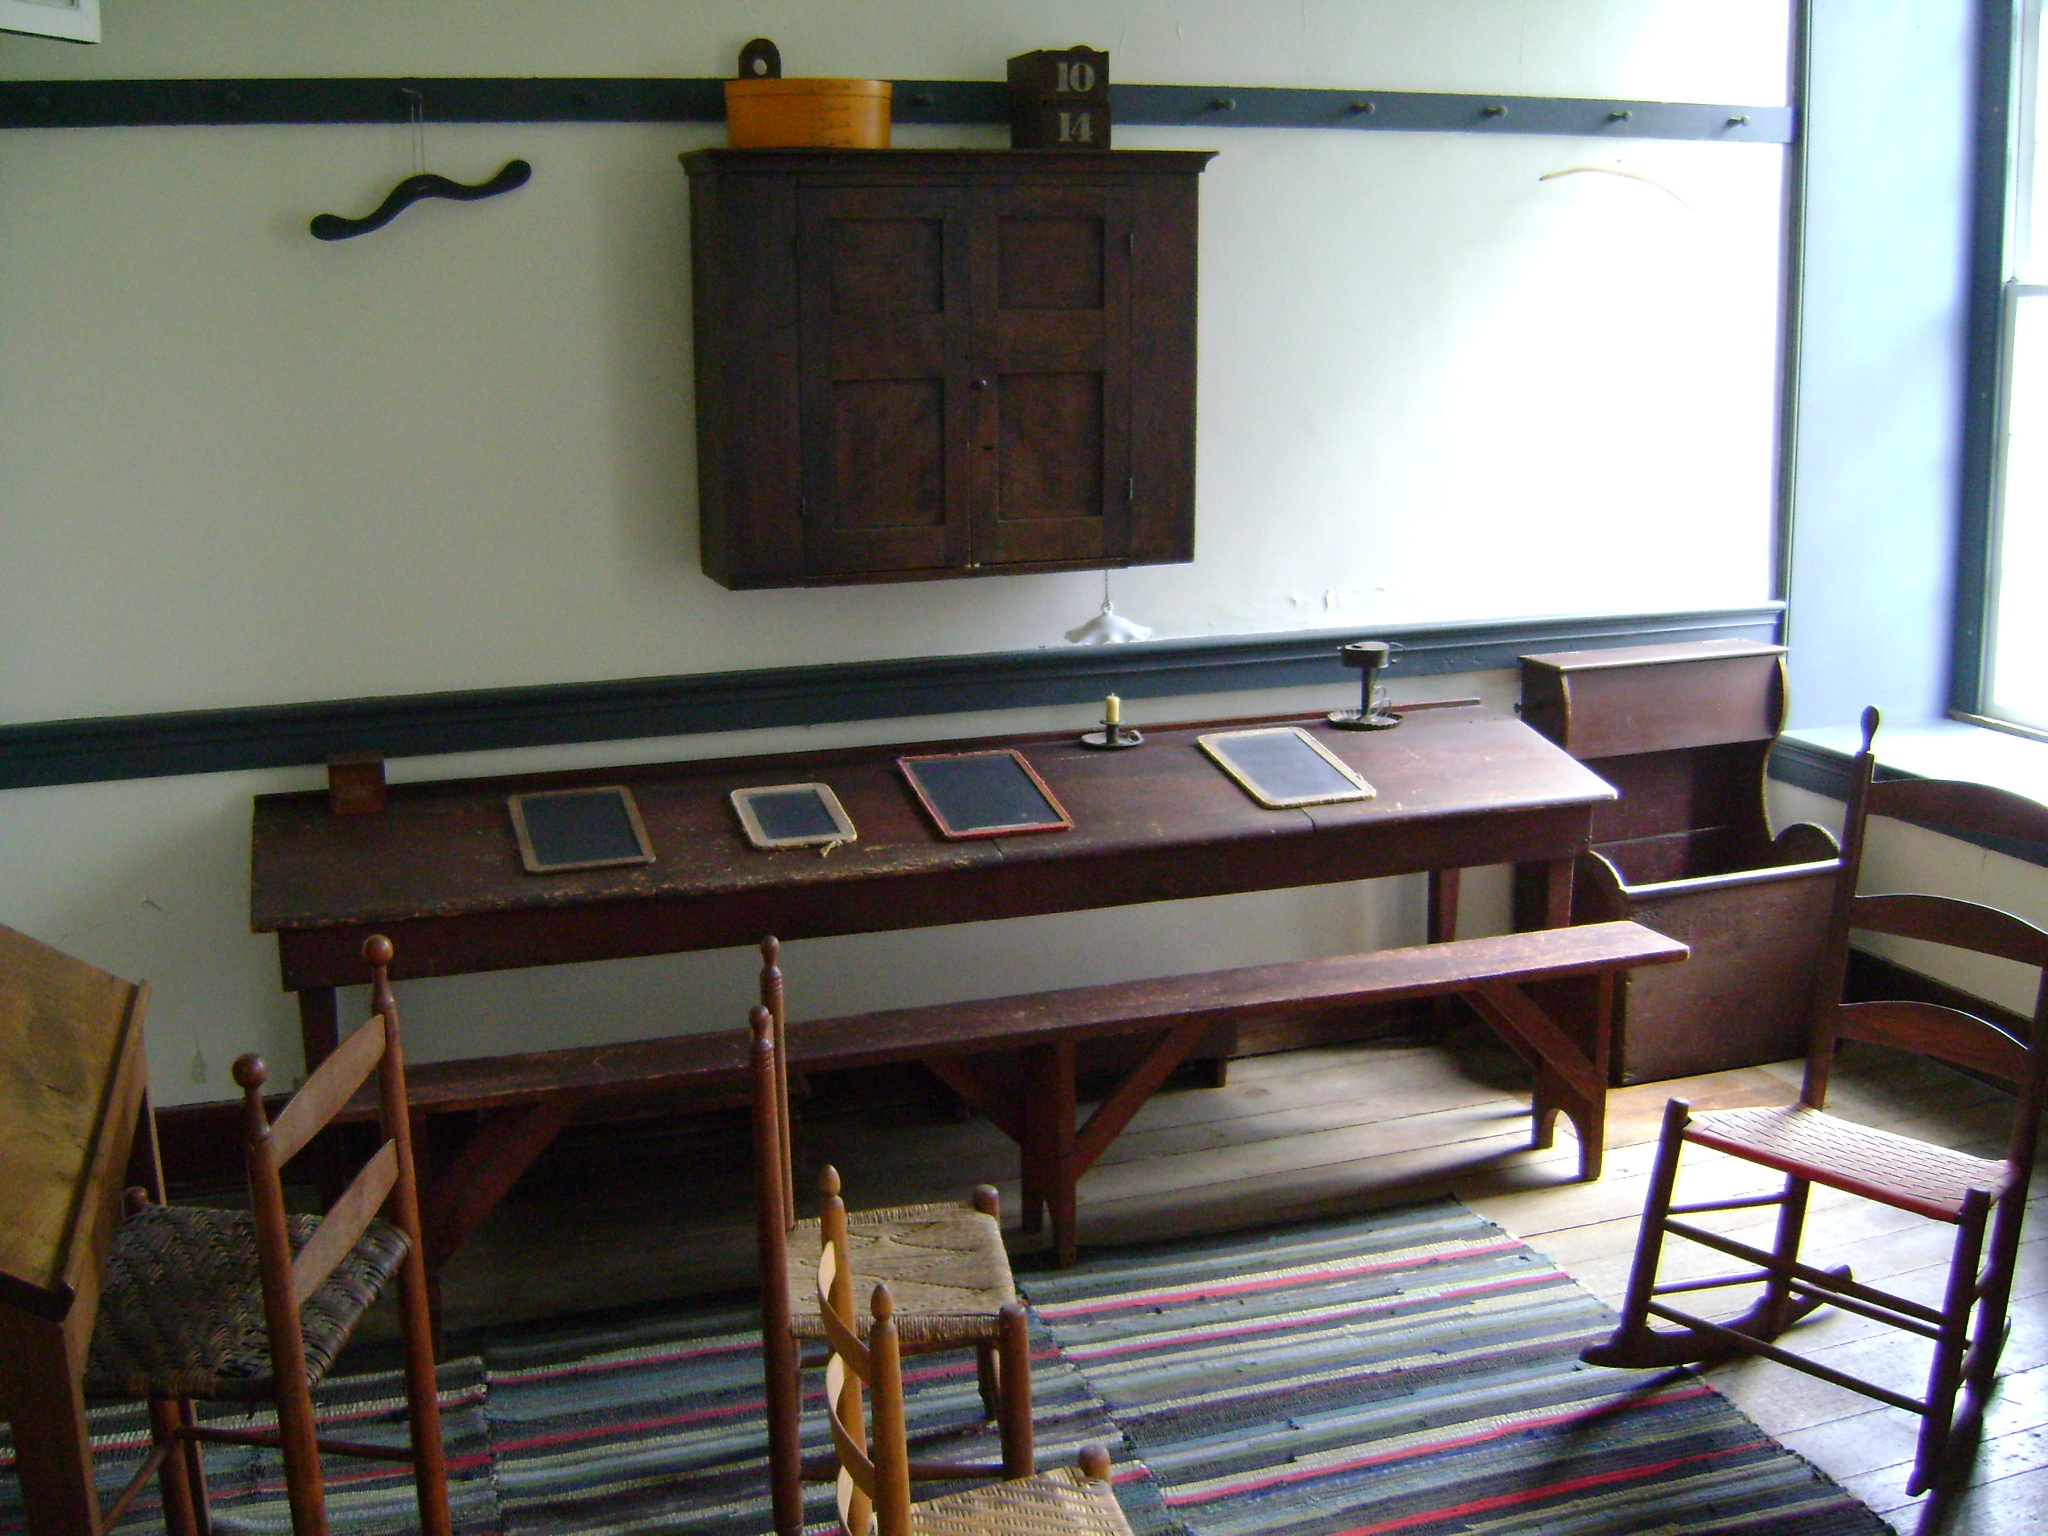 Shaker furniture - Wikipedia, the free encyclopedia